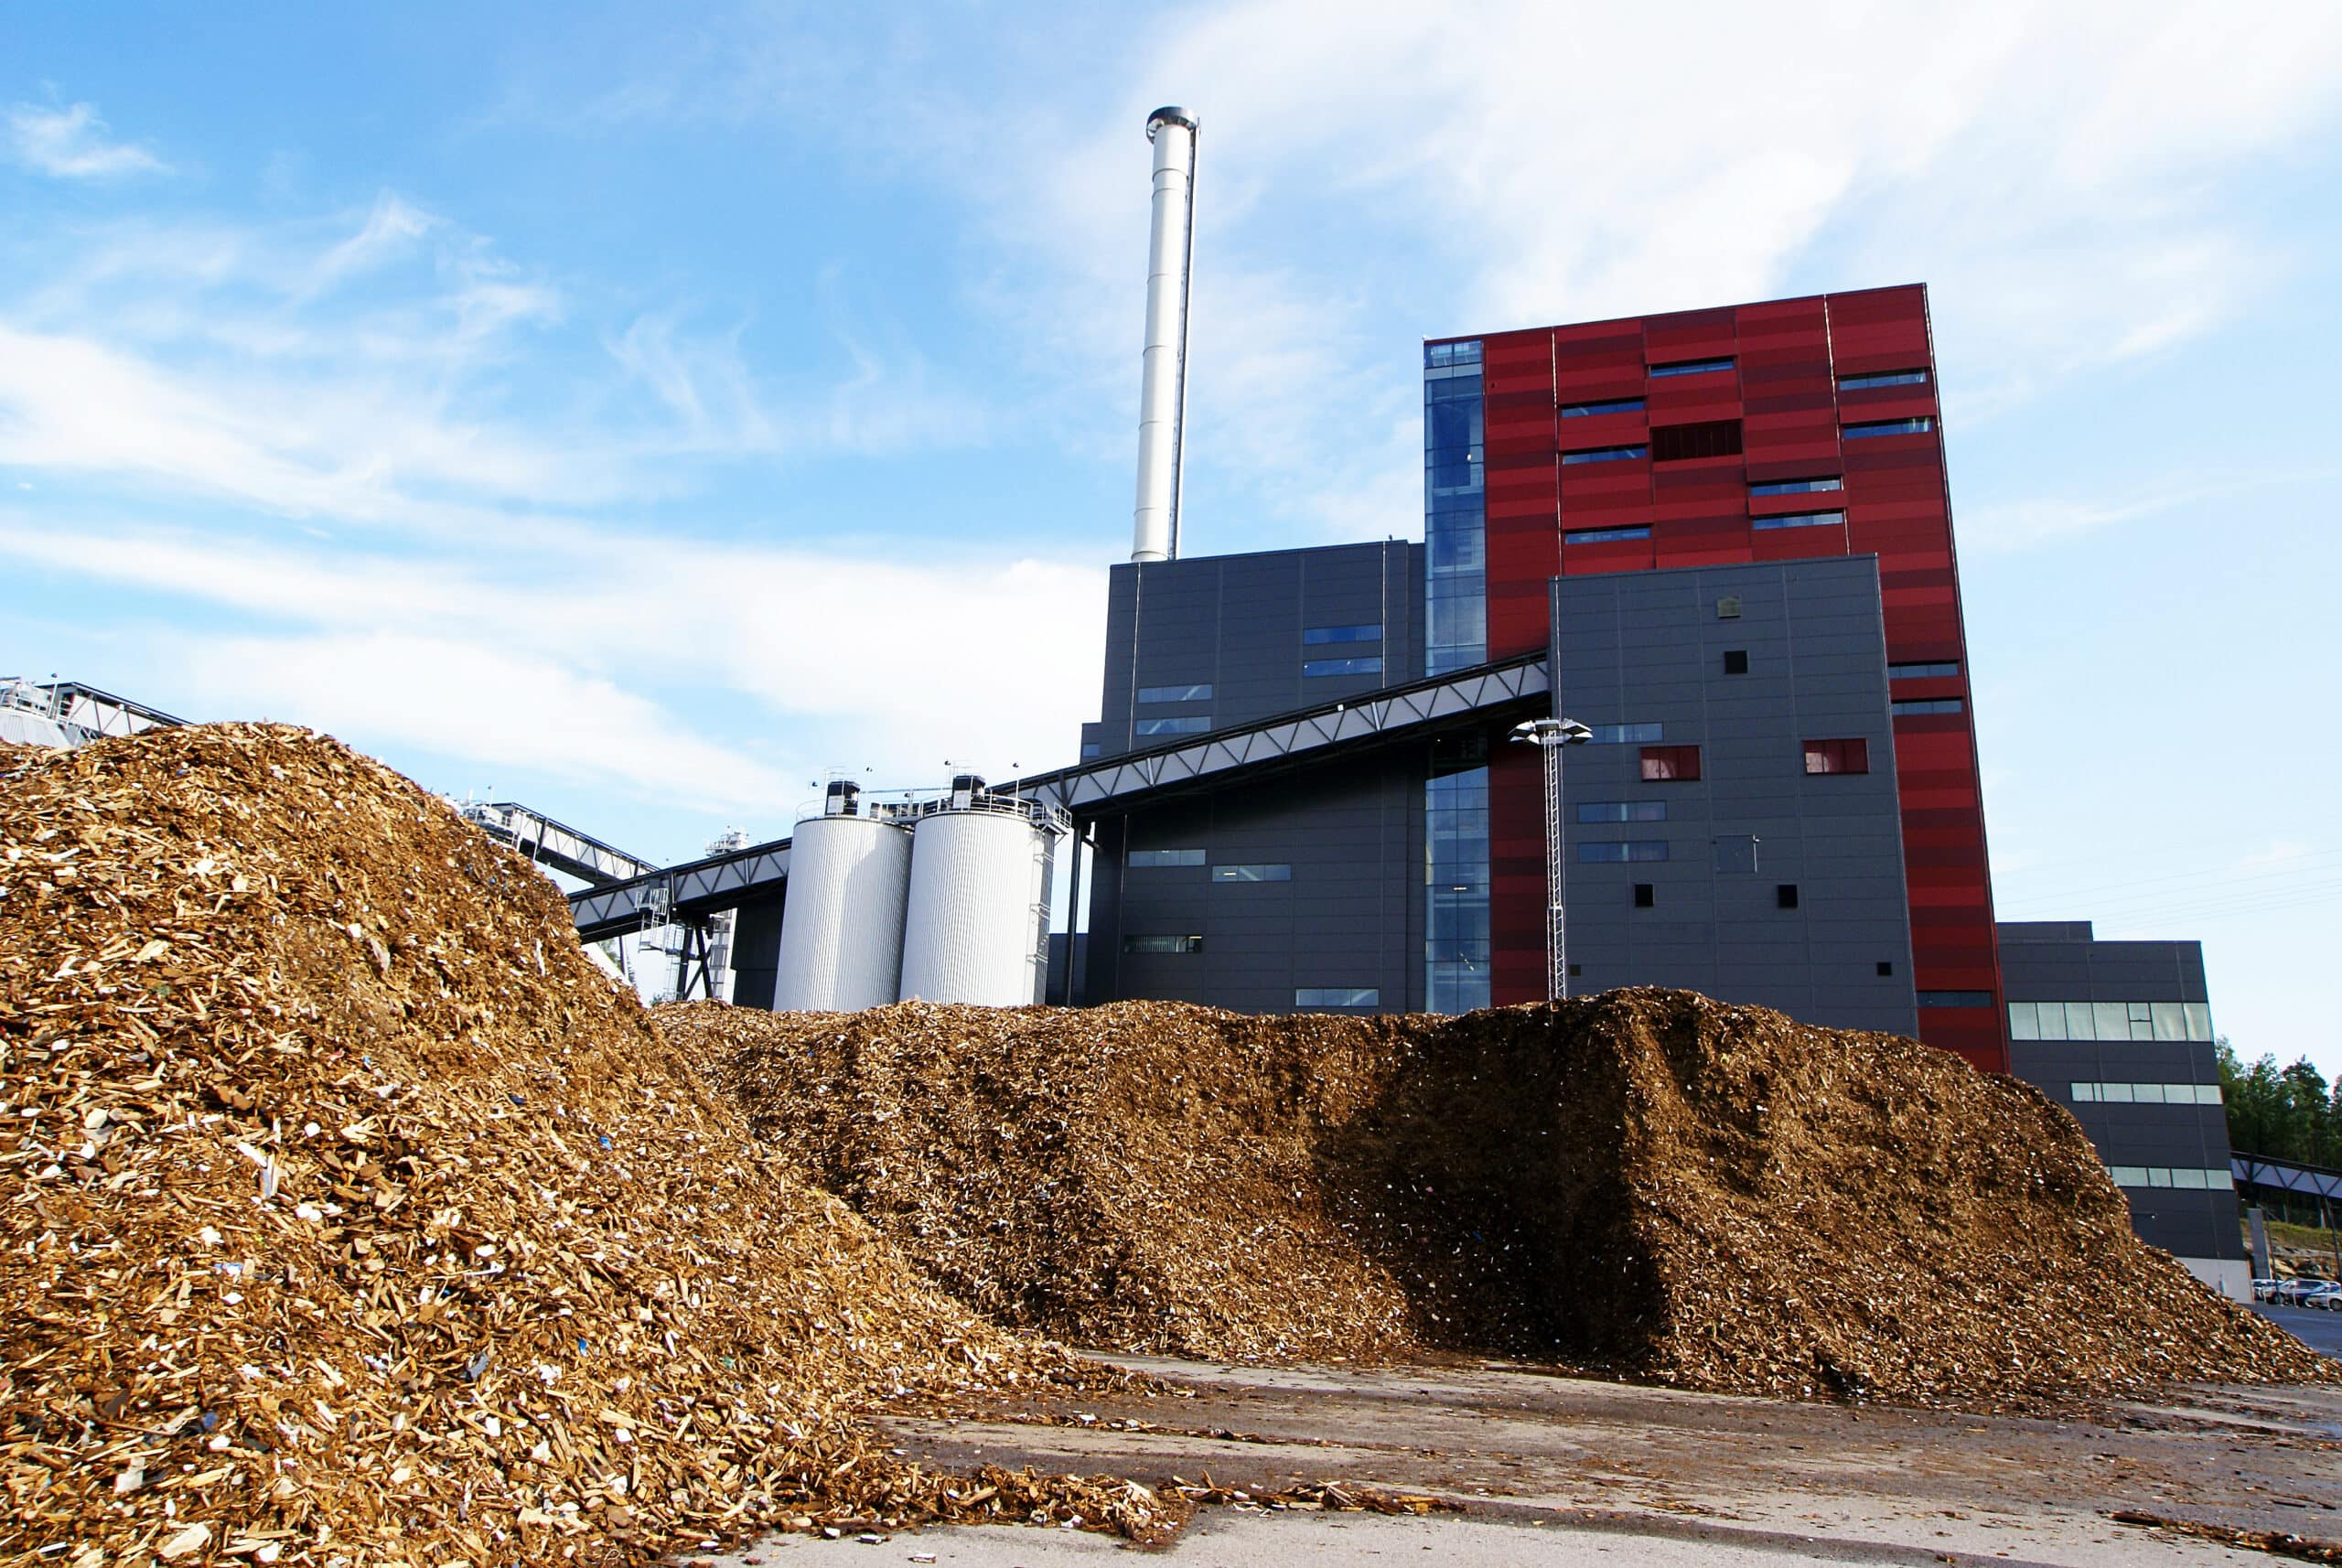 biomass power plant with storage for reusable energy